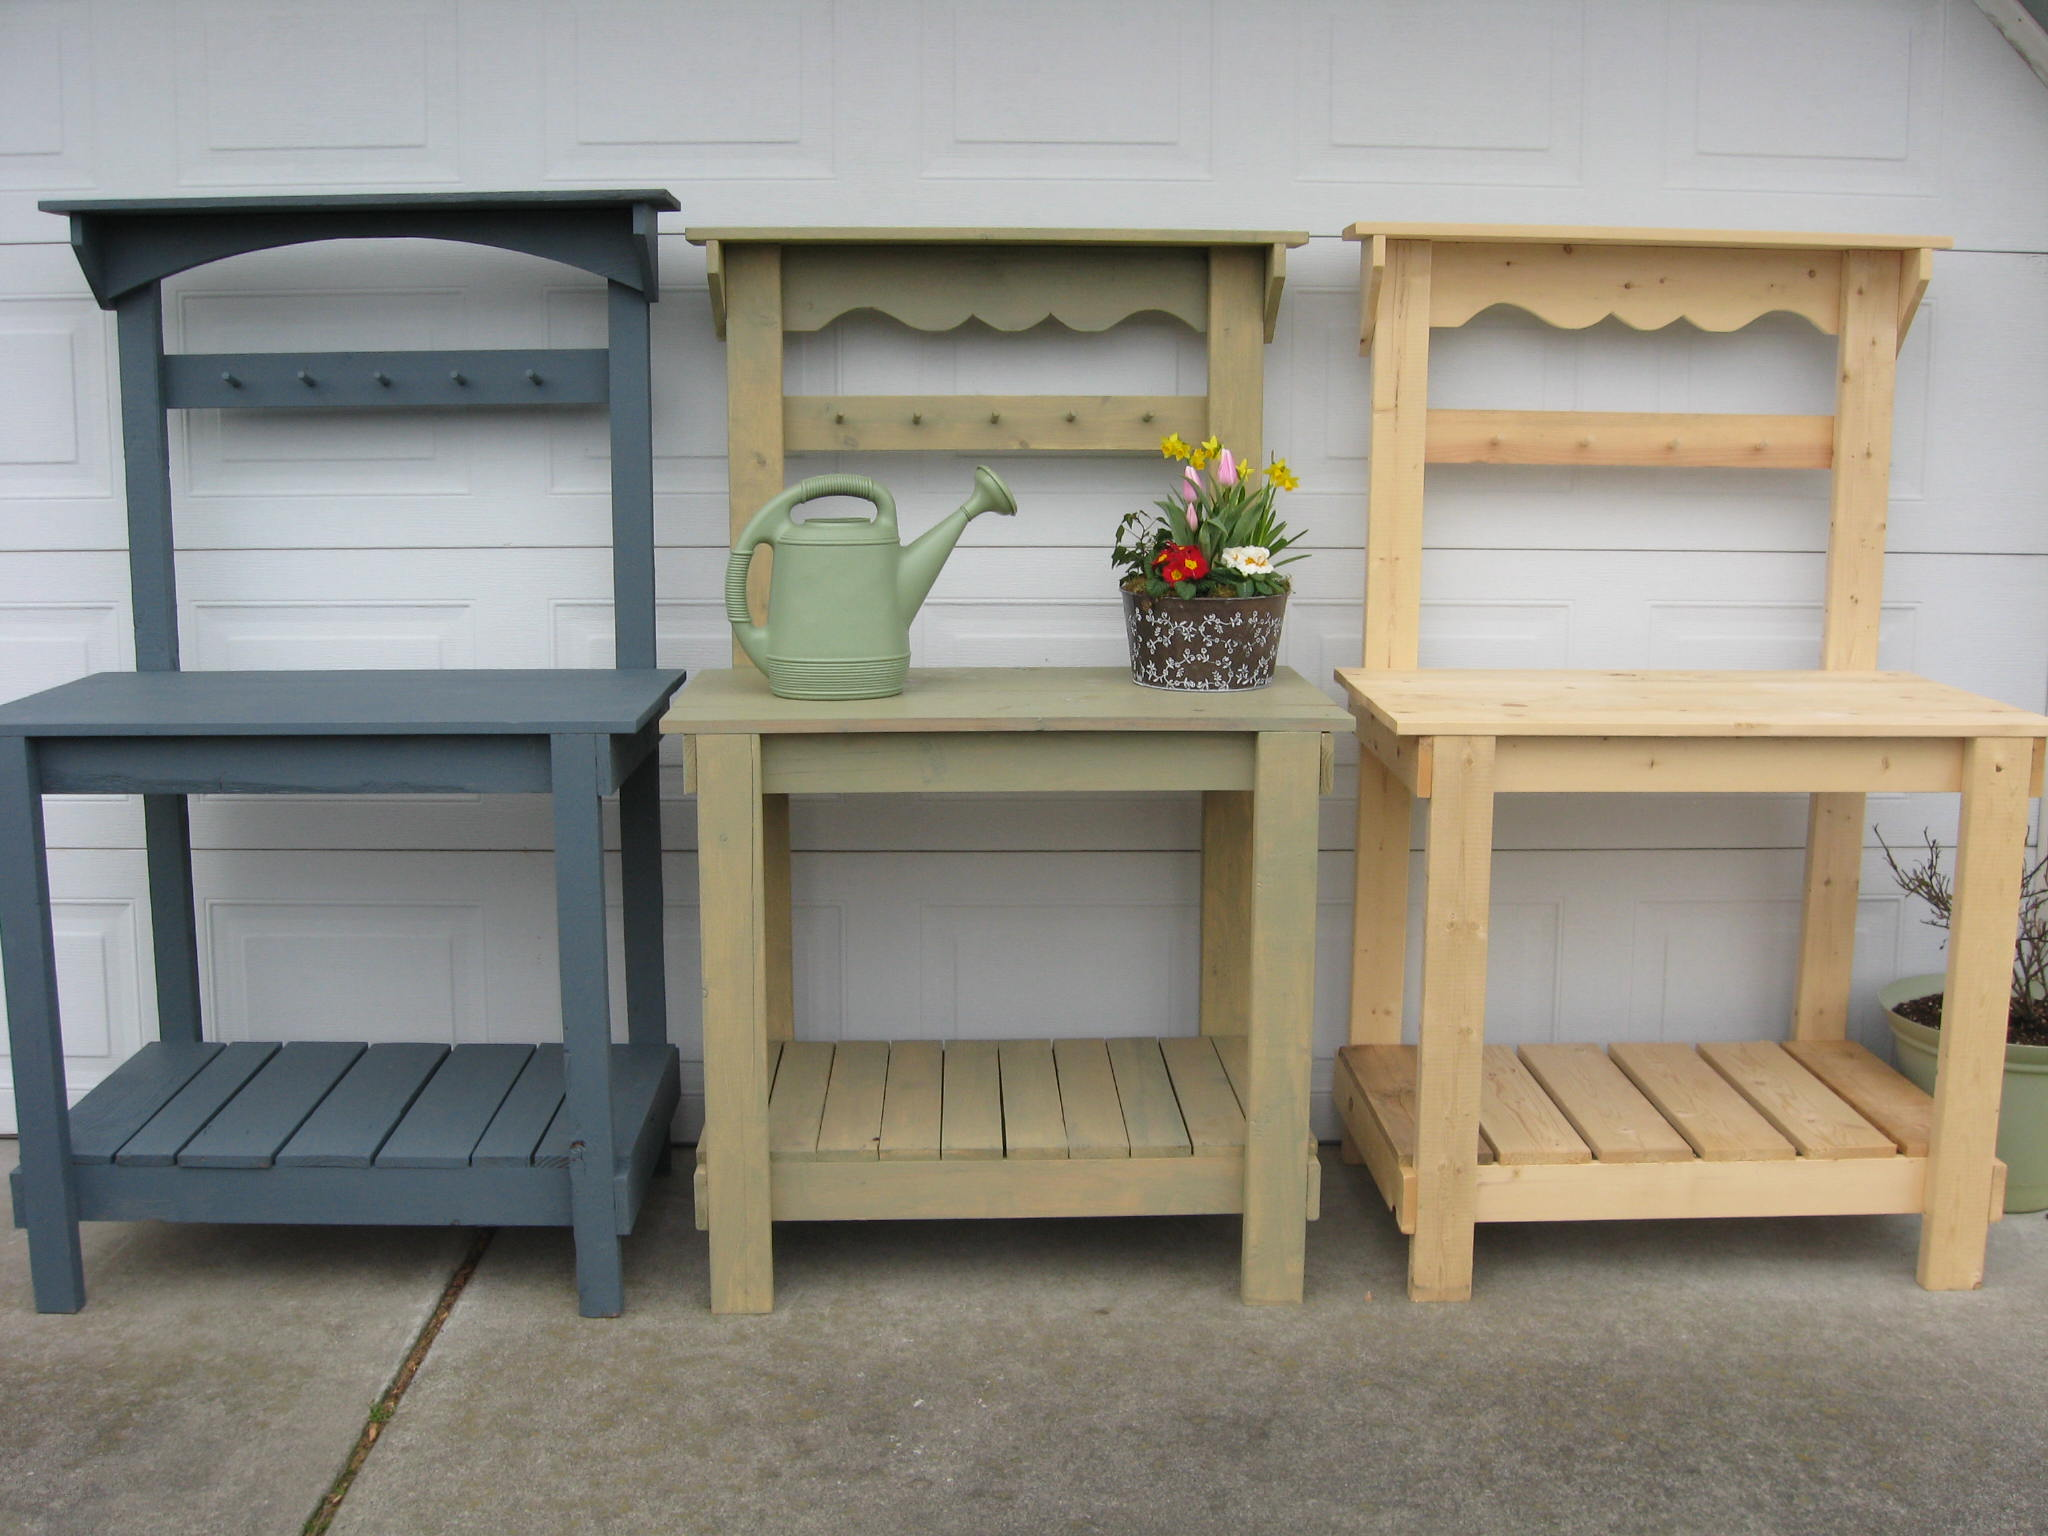 Potting Benches For Sale 28 Images Console Table Potting Bench For Sale At Wayside Gardens